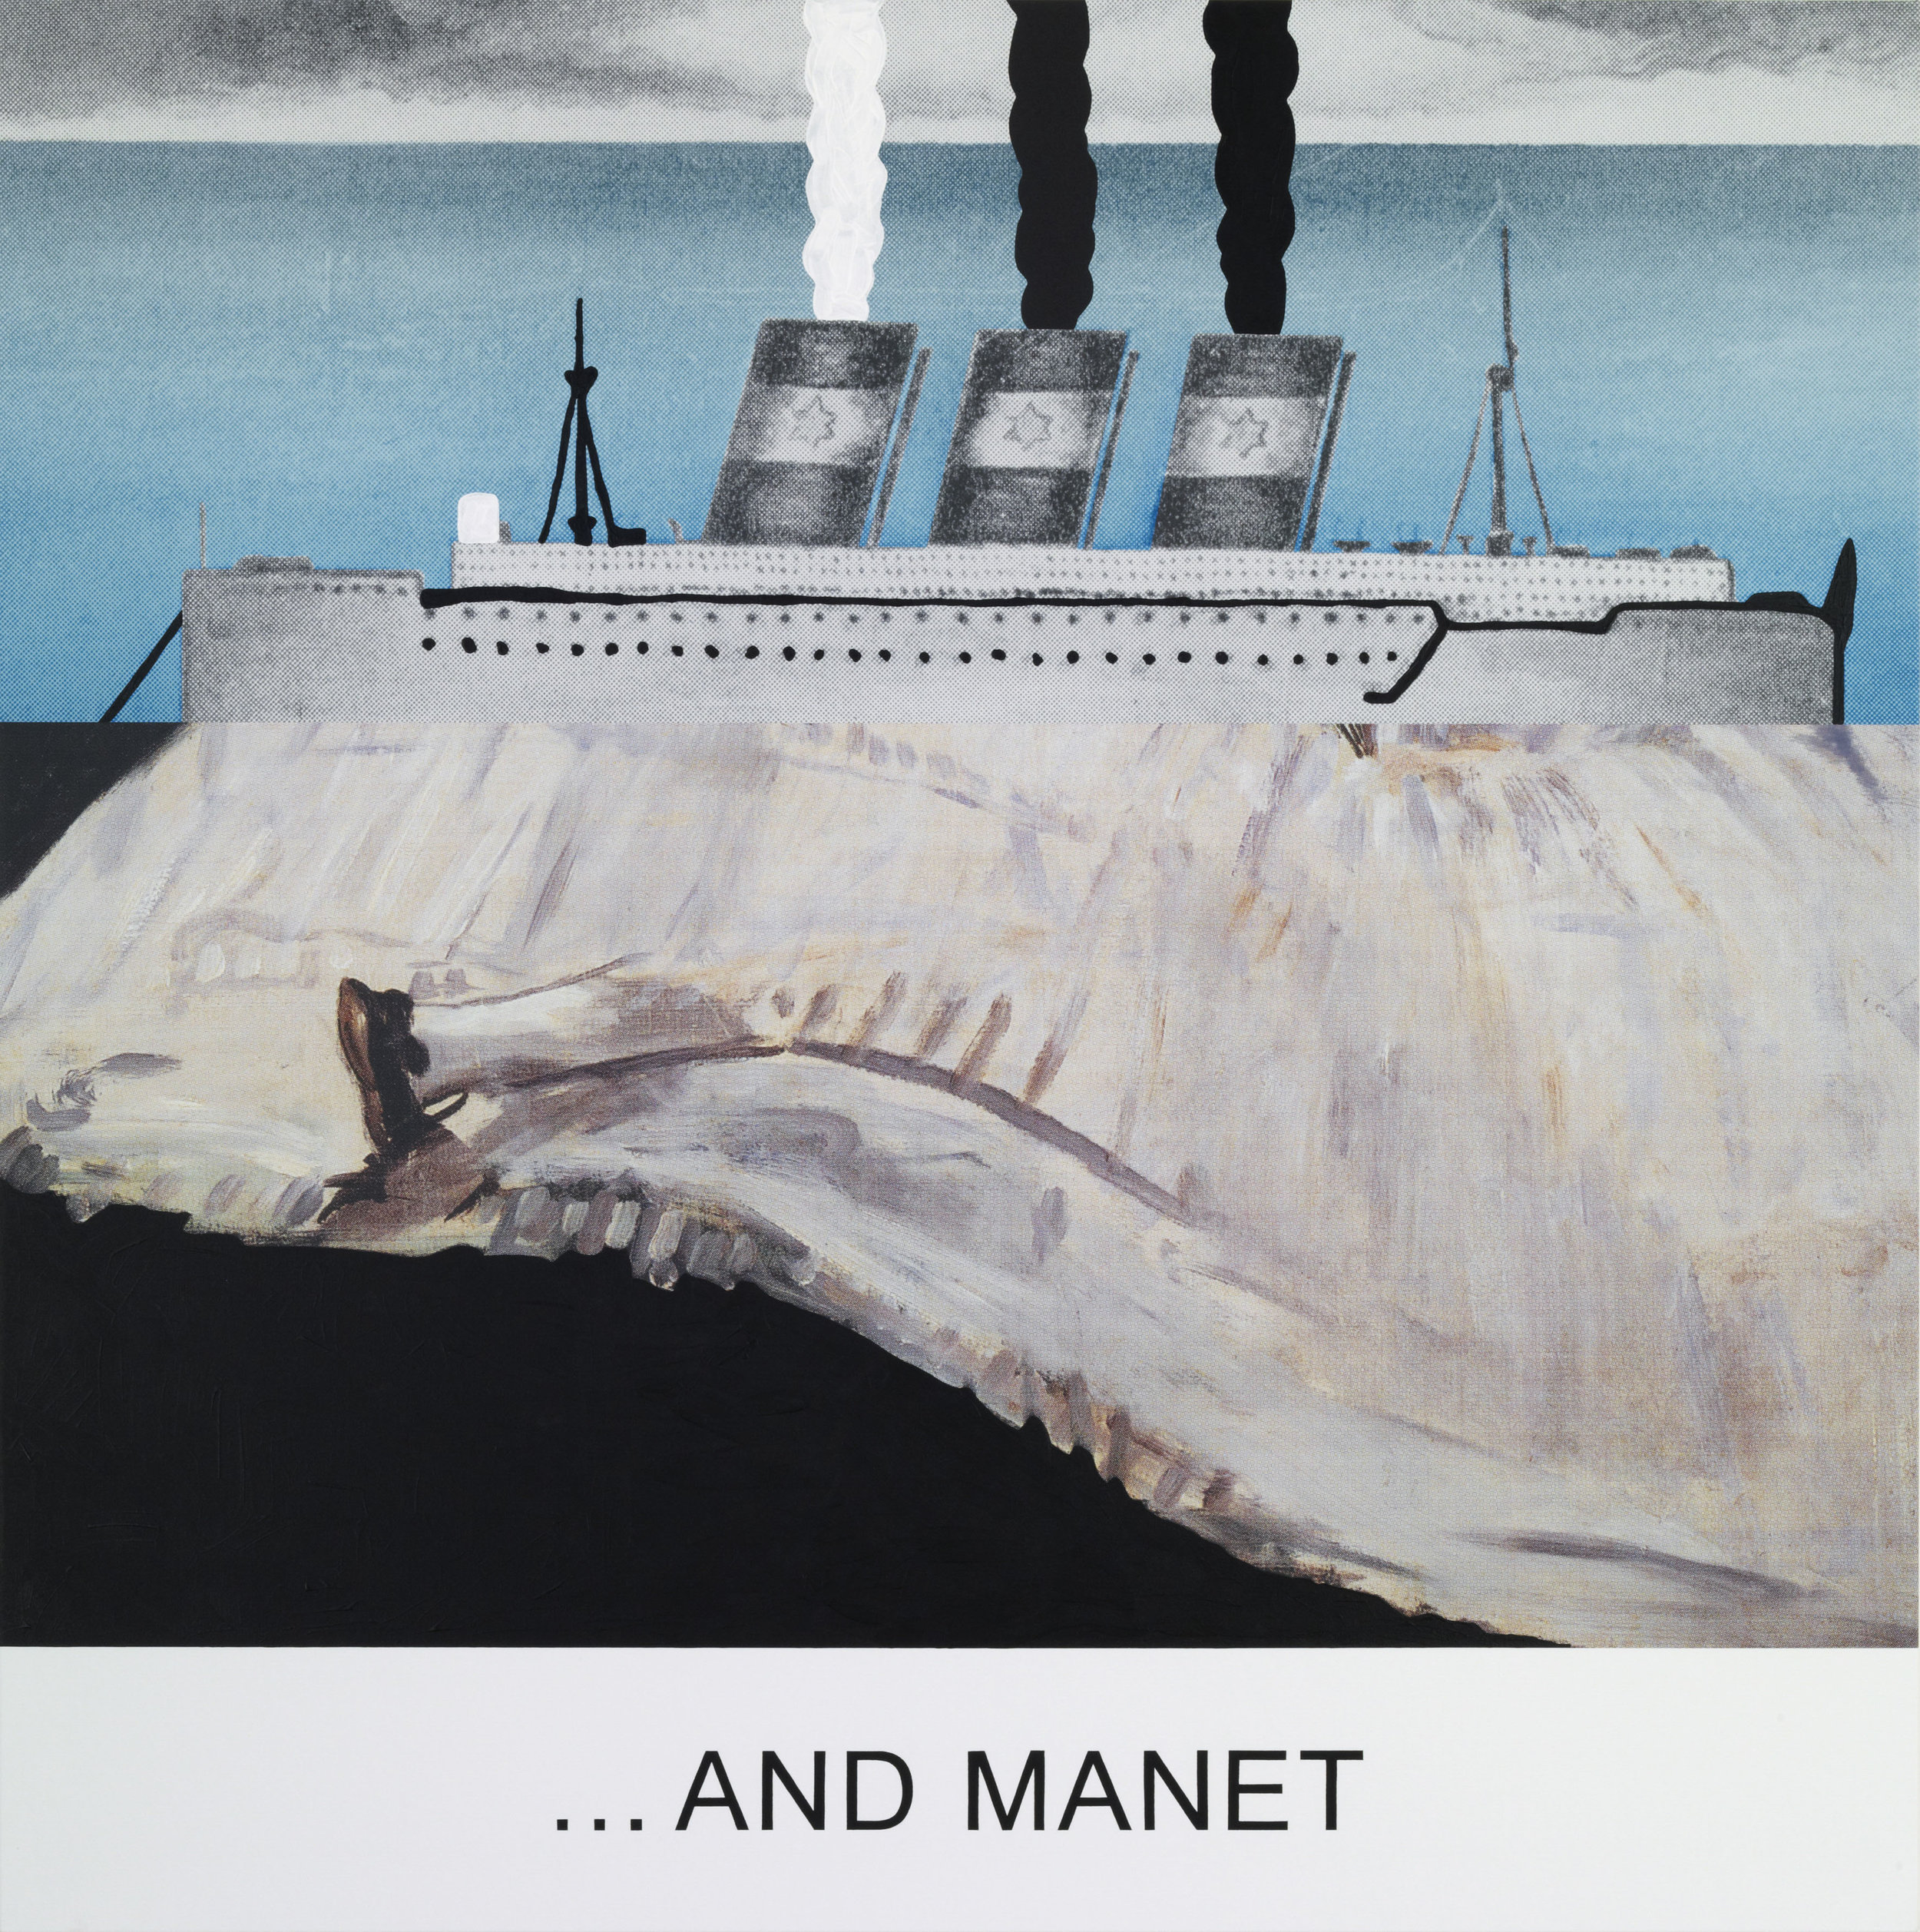 """JOHN BALDESSARI. """"DOUBLE BILL: ...AND MANET"""" (2012). LACQUERED INKJET PRINT ON CANVAS WITH ACRYLIC AND OIL PAINT. 152.4 X 152.4 CM. COURTESY OF THE ARTIST AND MARIAN GOODMAN GALLERY, NEW YORK."""